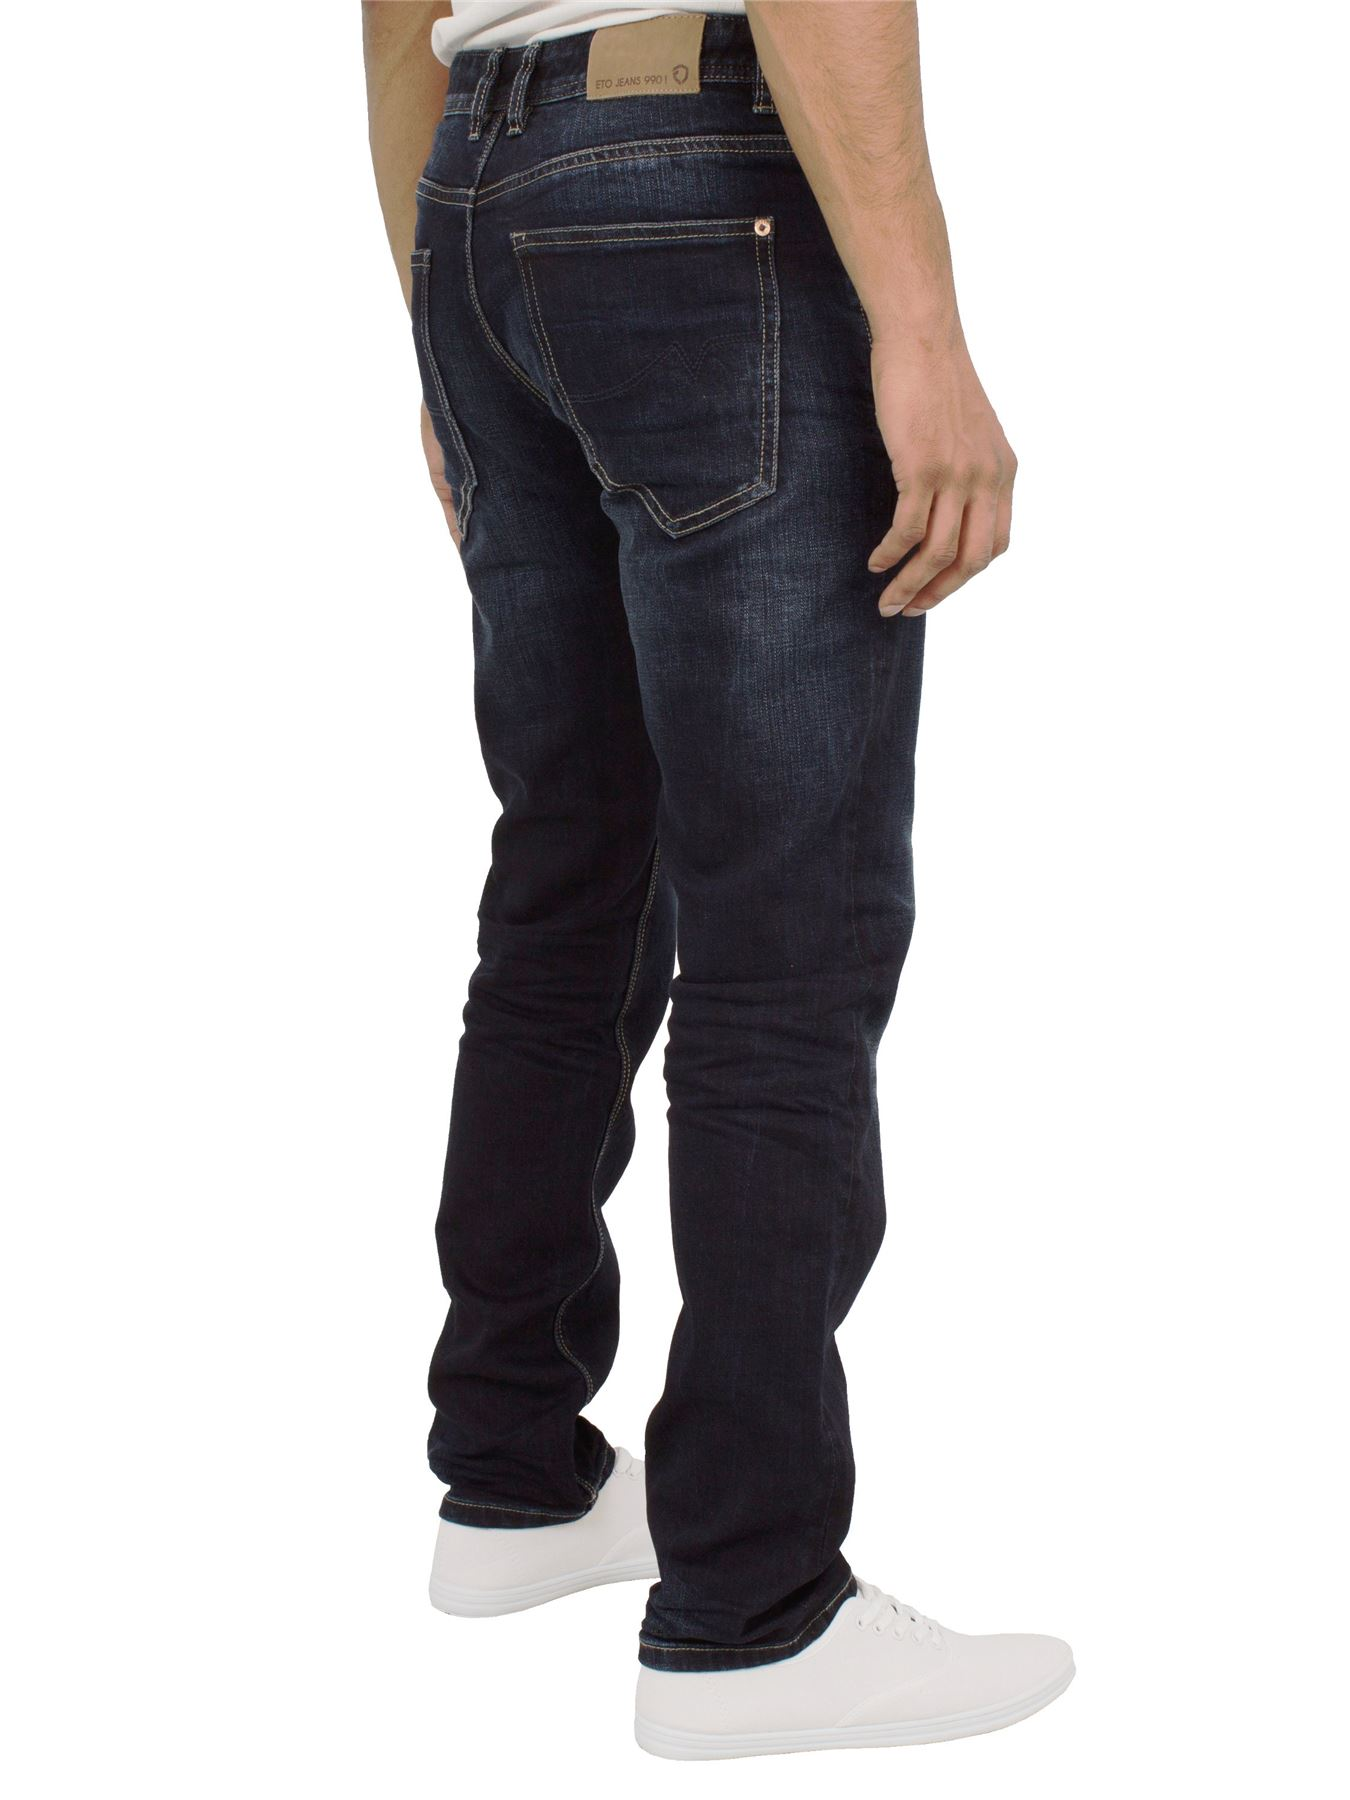 Eto-Designer-Mens-Tapered-Jeans-Slim-Fit-Stretch-Denim-Trouser-Pants-All-Waists thumbnail 17